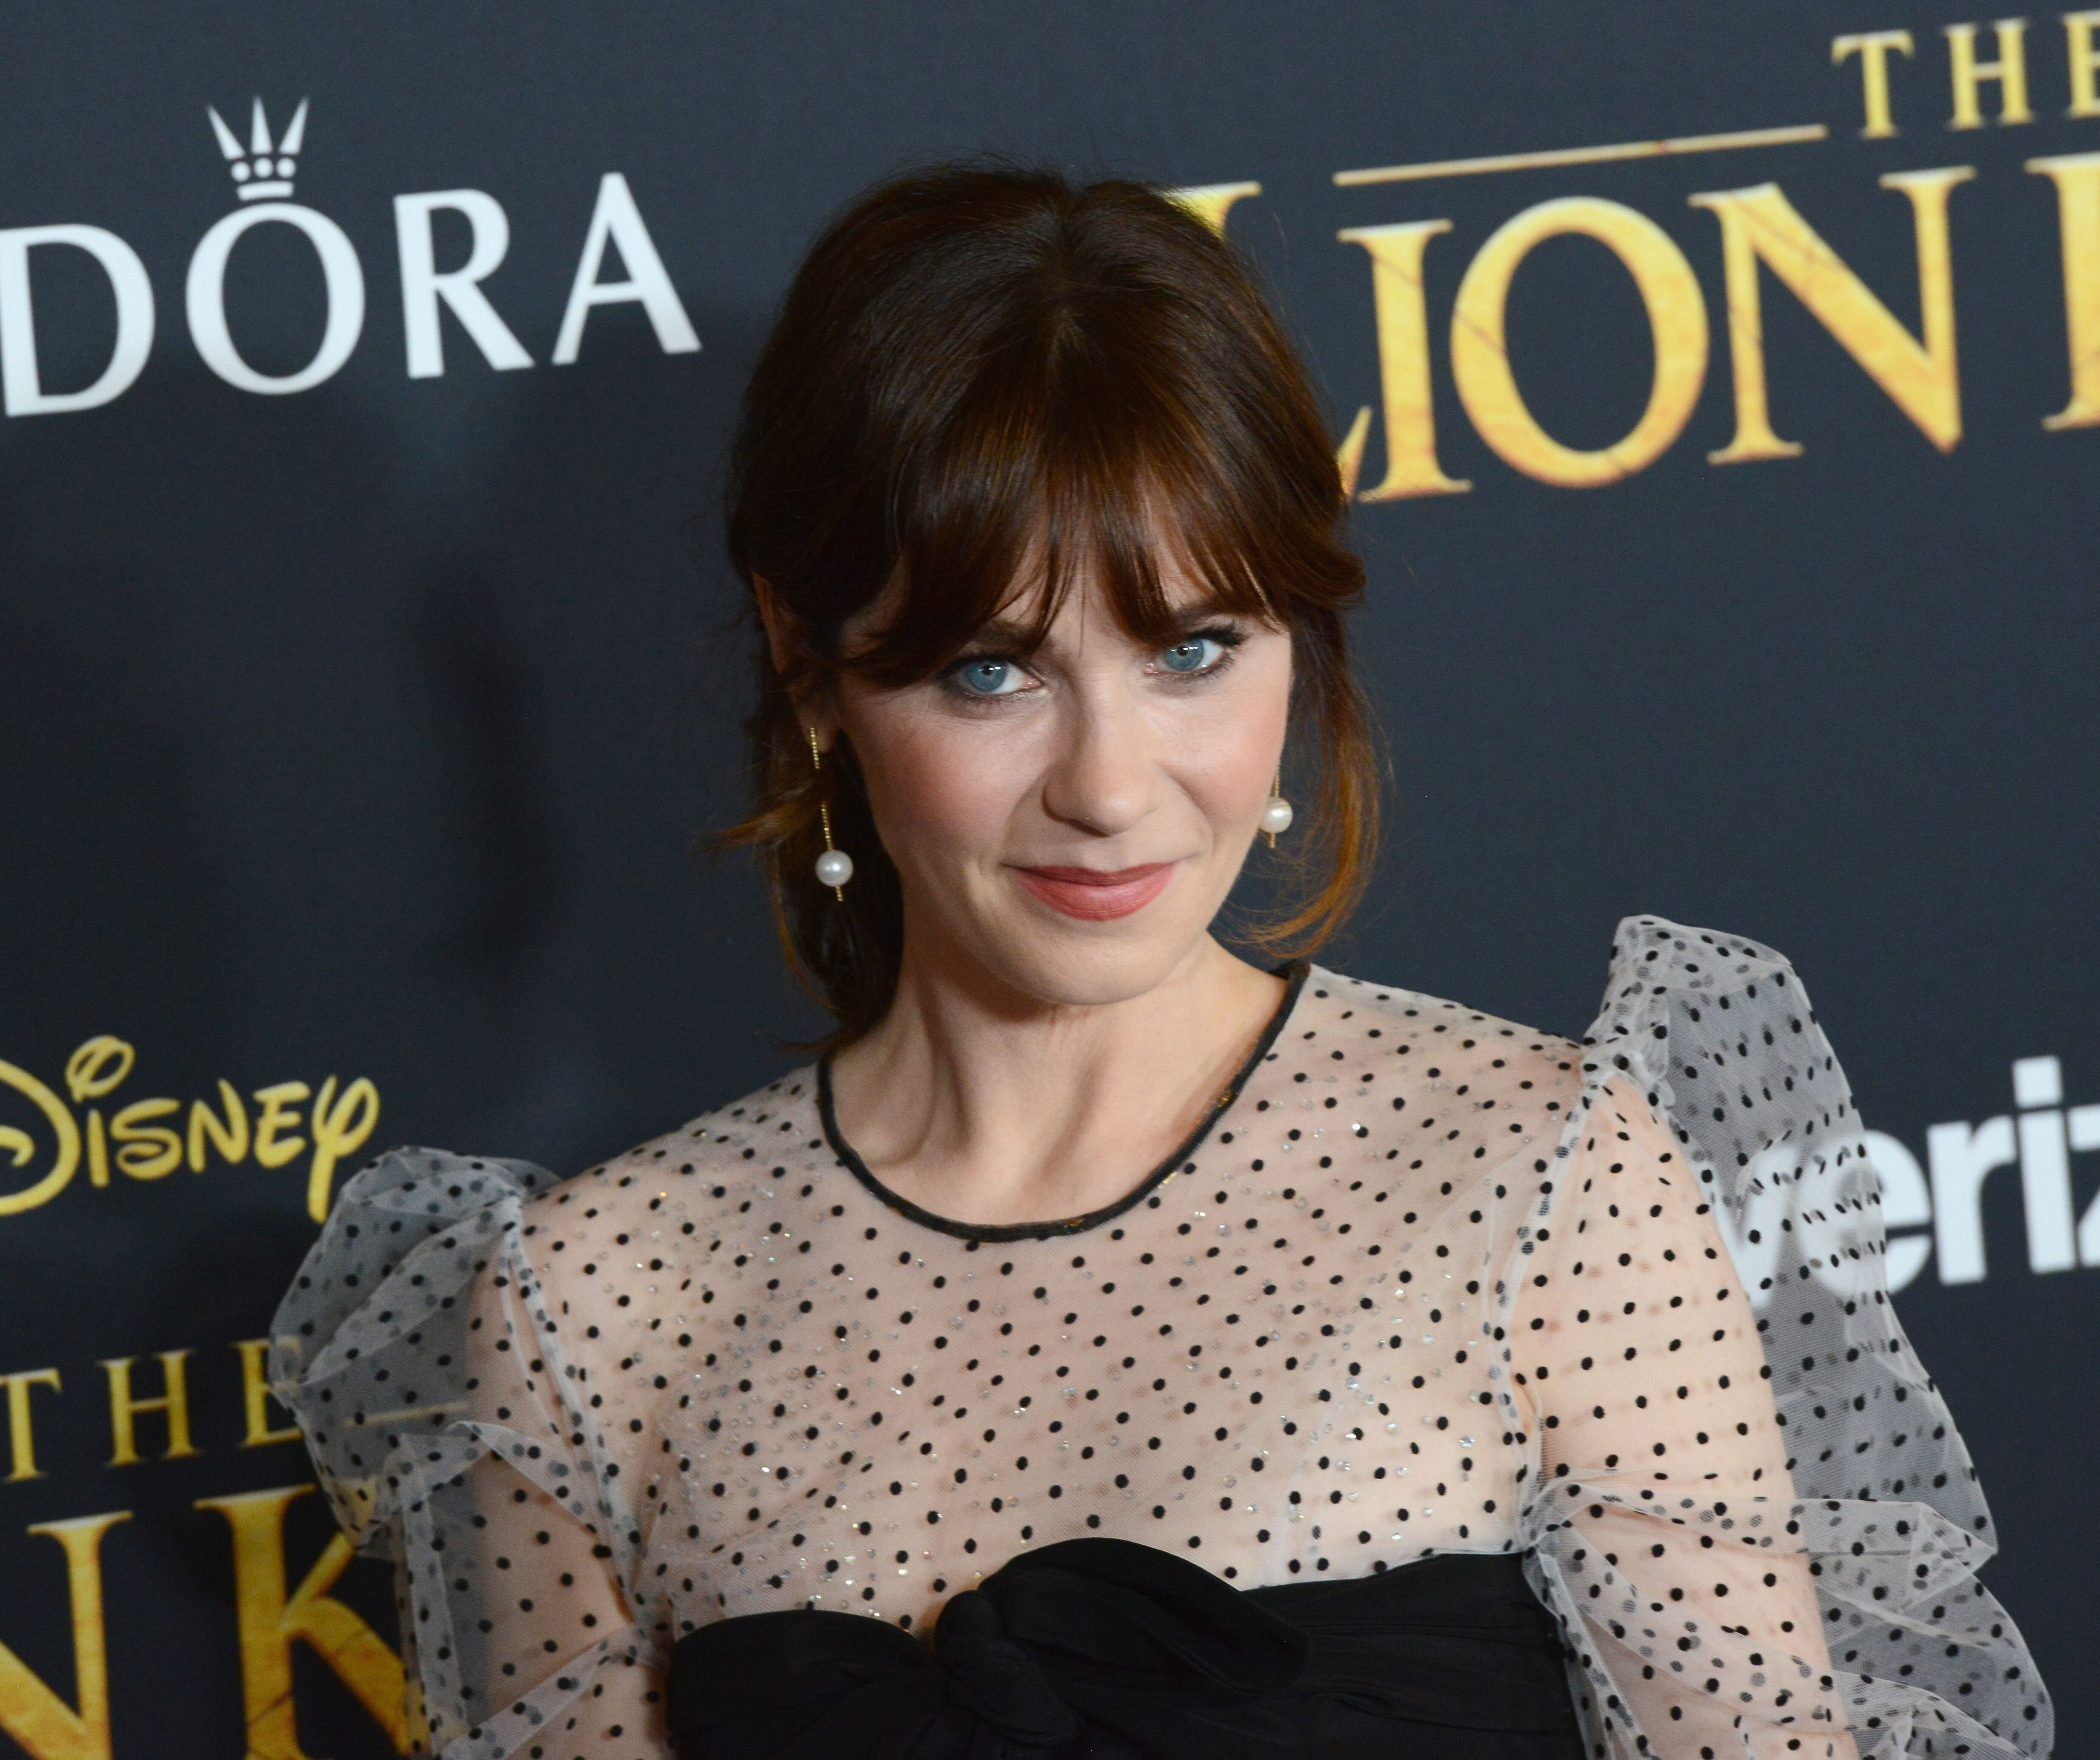 Zooey Deschanel at the The Lion King premiere held at Dolby Theatre on July 9, 2019, in Hollywood, California | Photo: Albert L. Ortega/Getty Images